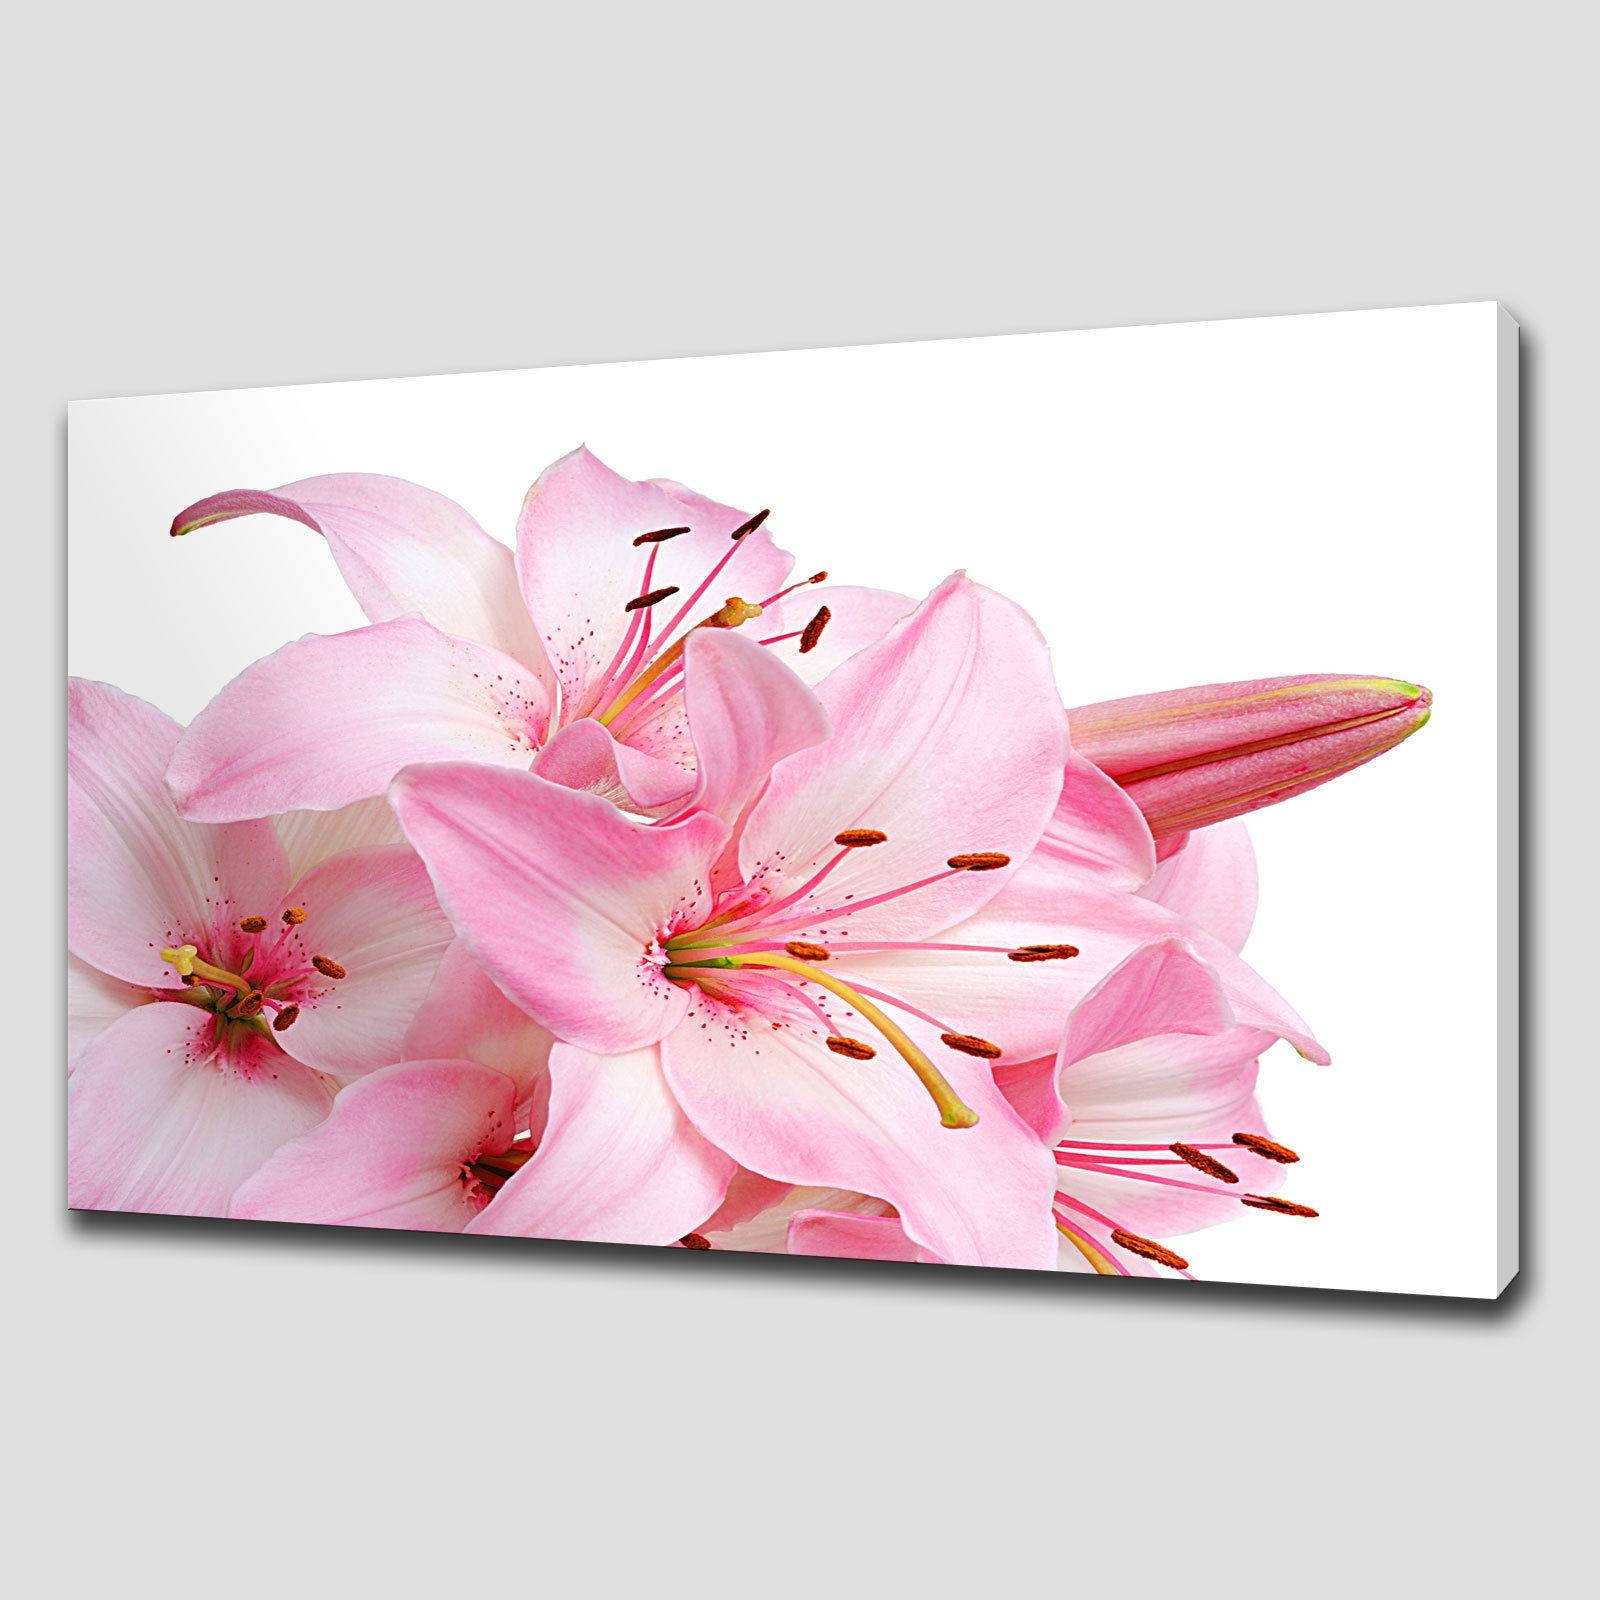 Wall Art Designs: Canvas Floral Wall Art Flowers Paintings Large Throughout Latest Flower Wall Art Canvas (View 19 of 20)